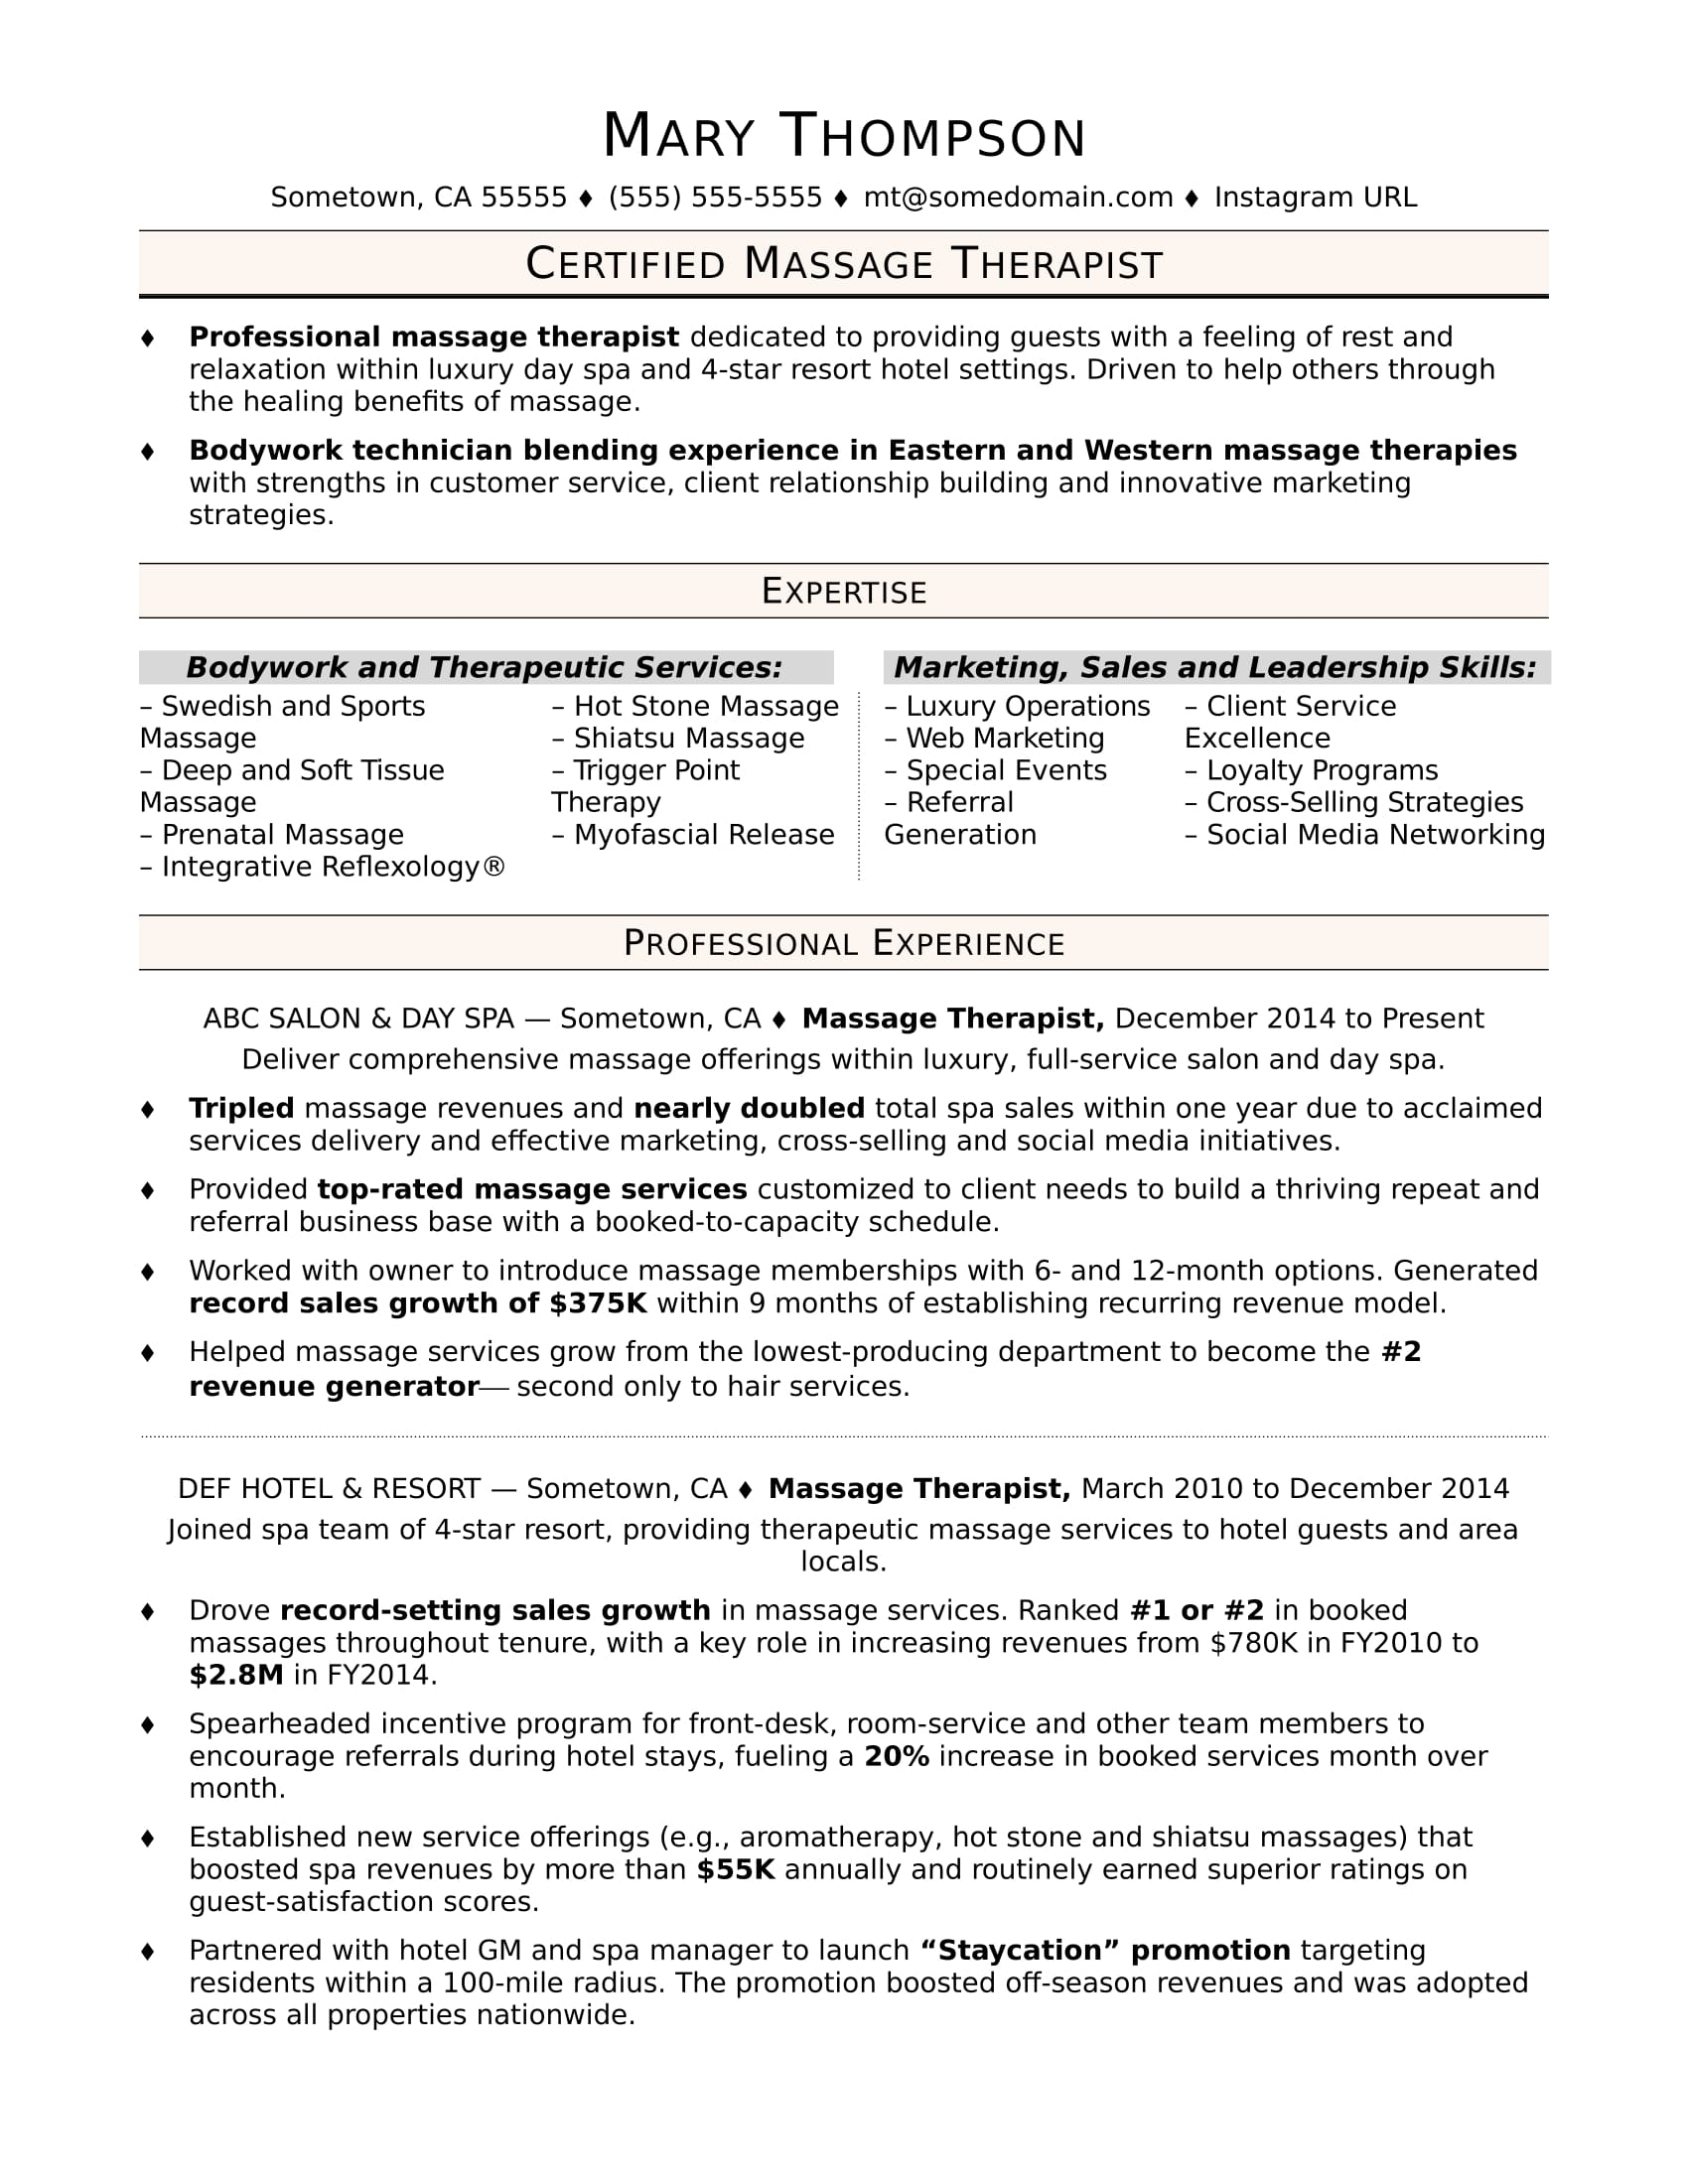 massage therapist resume sample monster objective dermatology entry level for examples Resume Massage Therapist Resume Objective